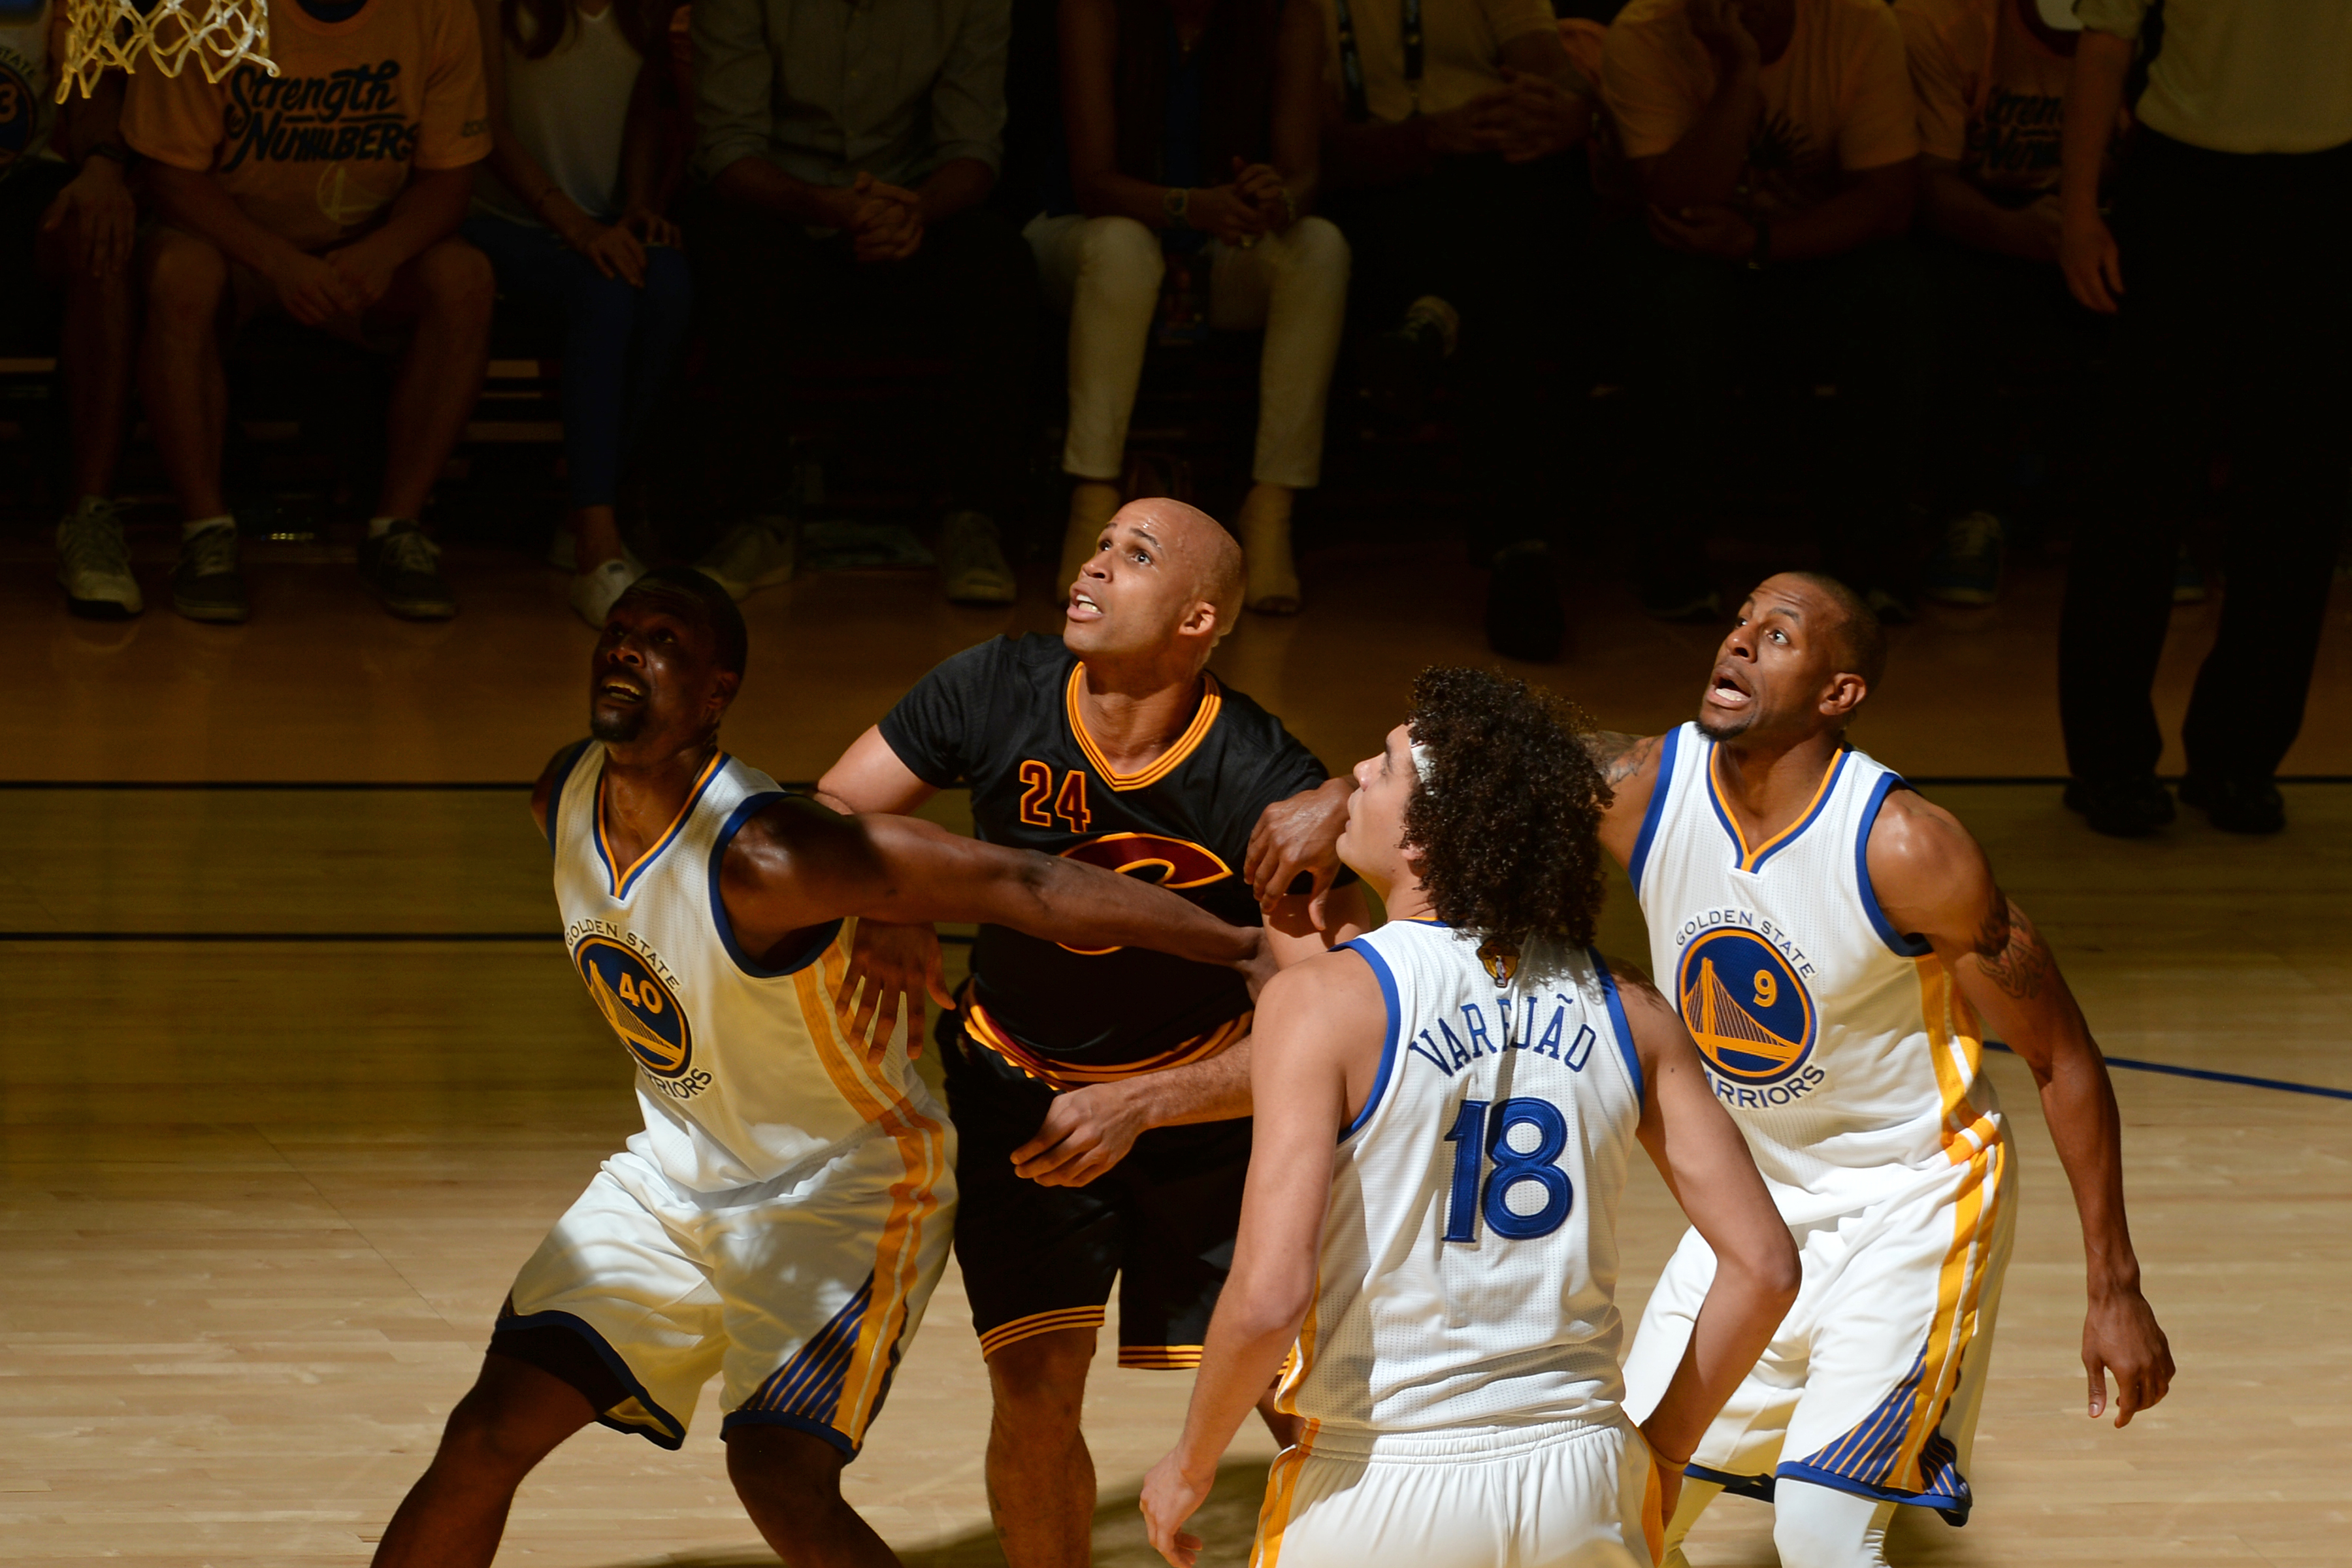 OAKLAND, CA - JUNE 19: Harrison Barnes #40, Anderson Varejao #18, and Andre Iguodala #9 of the Golden State Warriors box out against Richard Jefferson #24 of the Cleveland Cavaliers during the 2016 NBA Finals on June 19, 2016 at Oracle Arena in Oakland, C